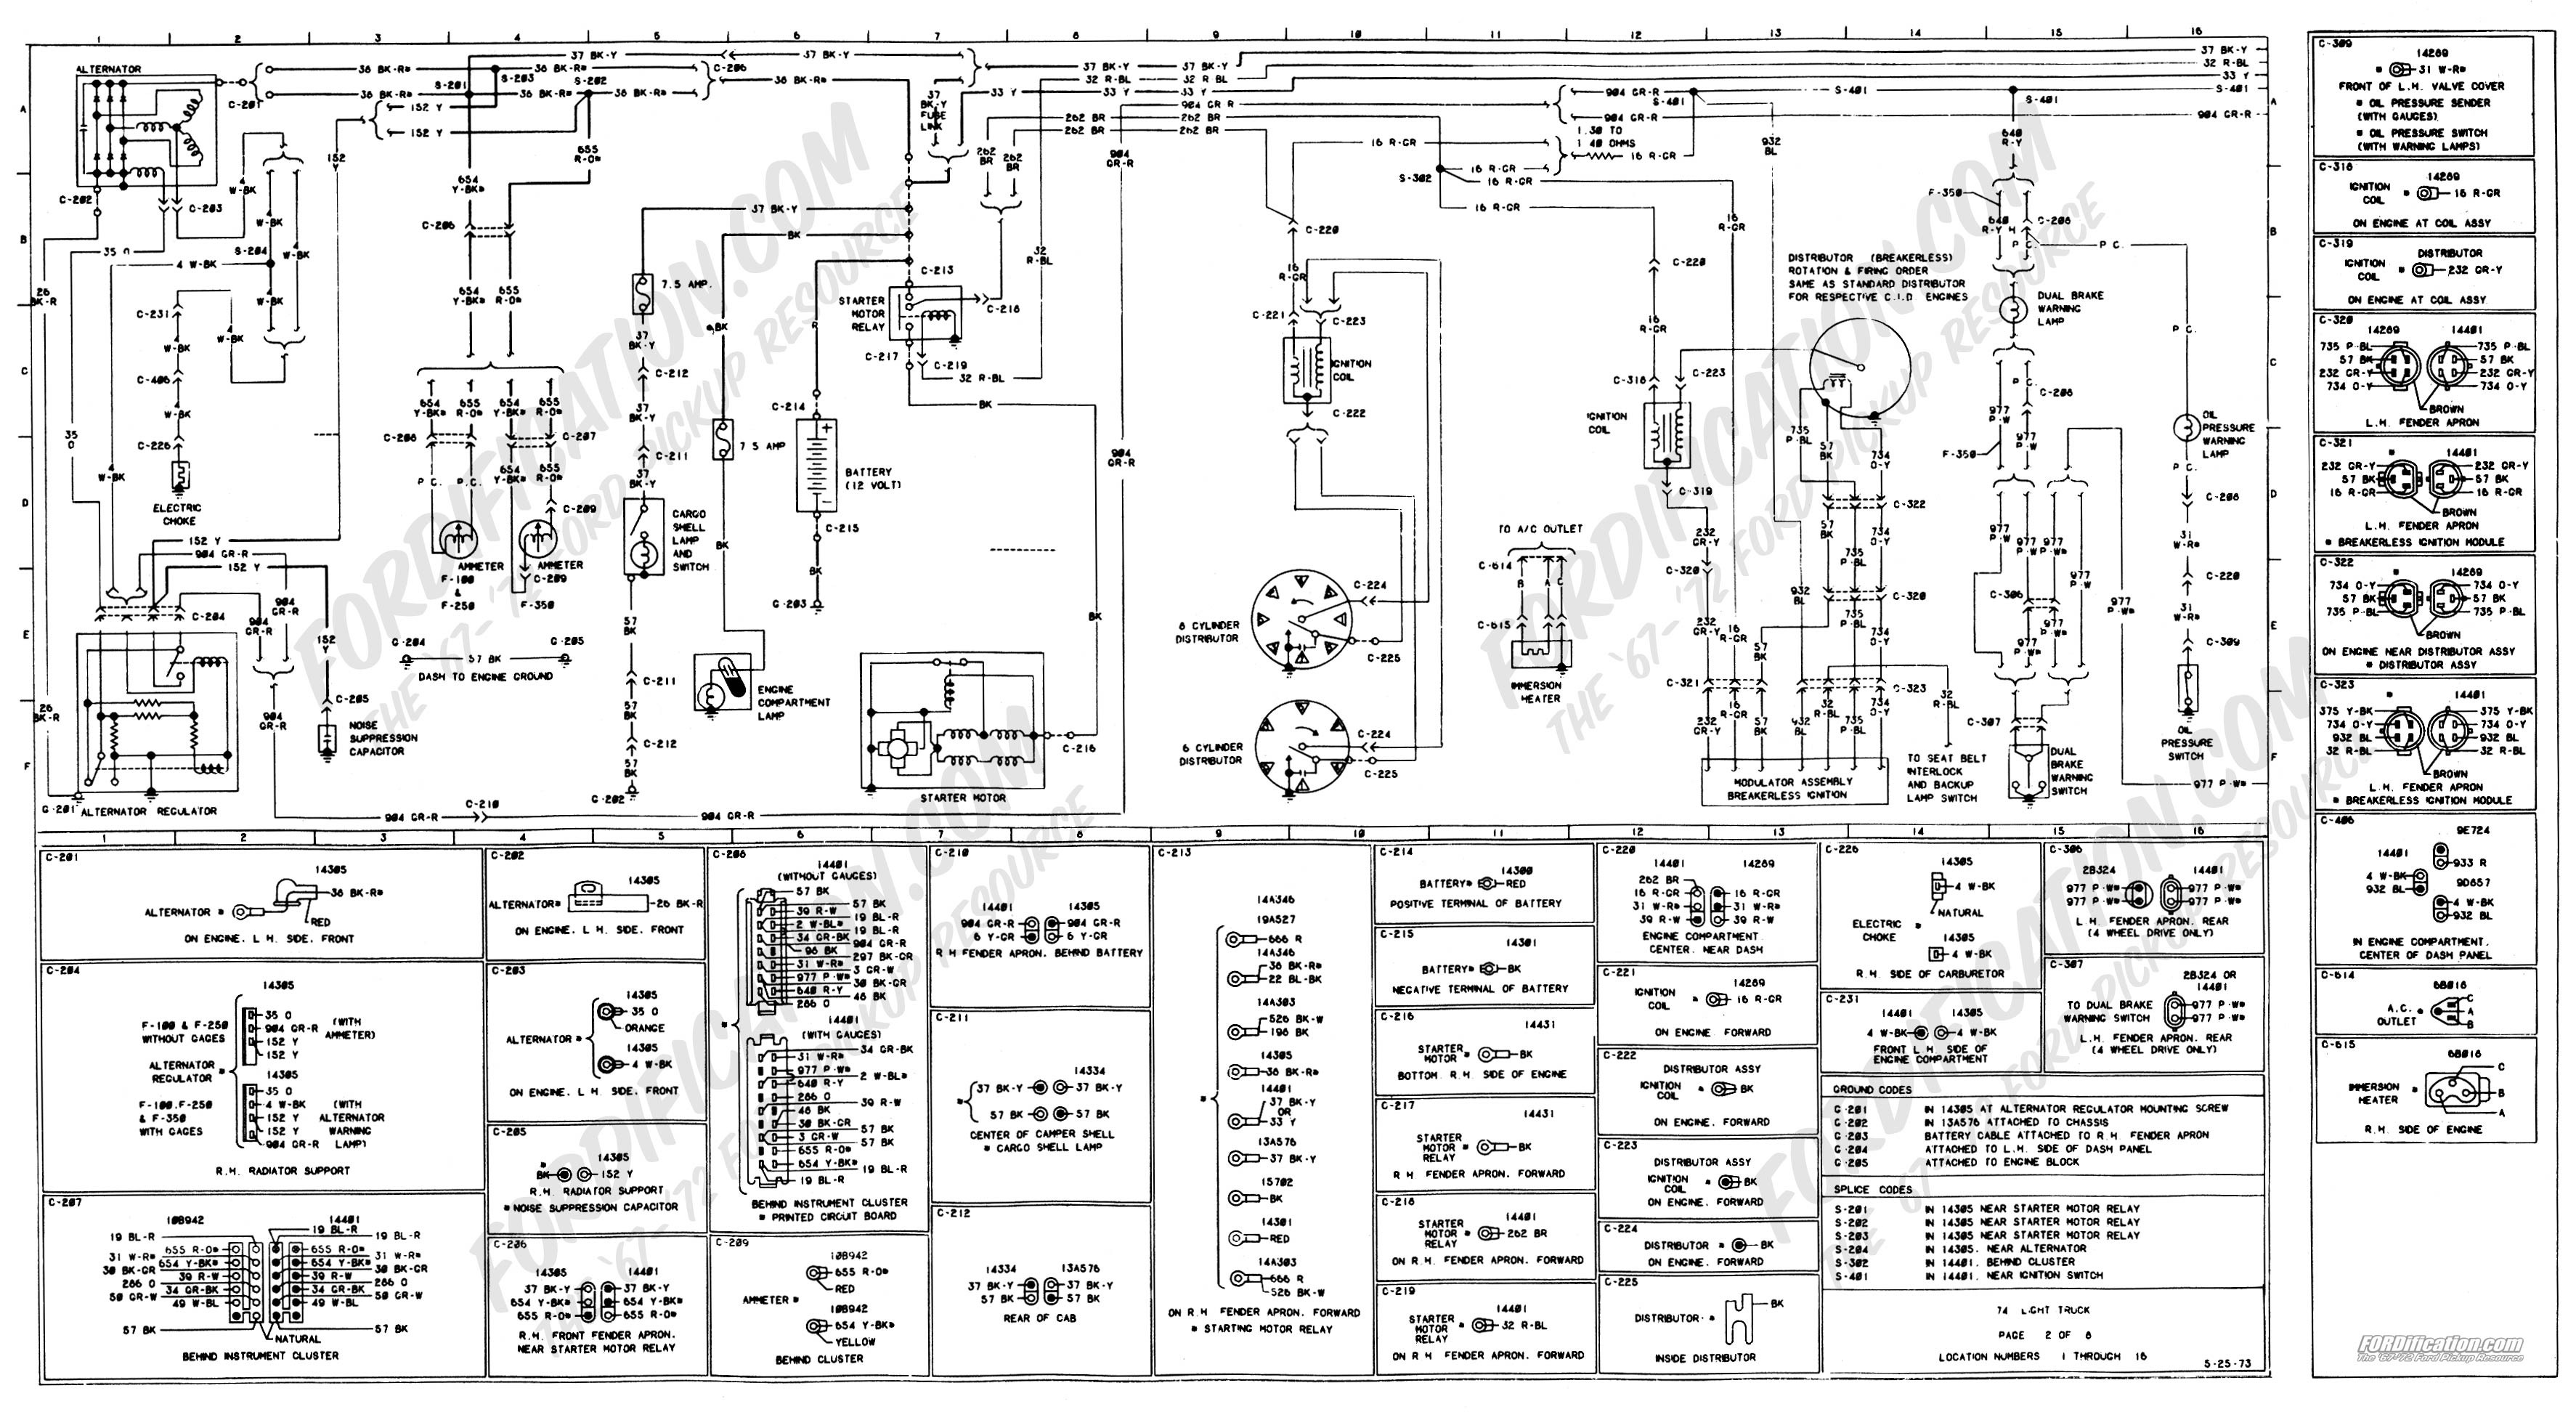 Dodge Ram 3500 Trailer Wiring Diagram Data Diagrams 2007 Mercury Mountaineer Sterling Truck For Alternator Best Site 2006 2003